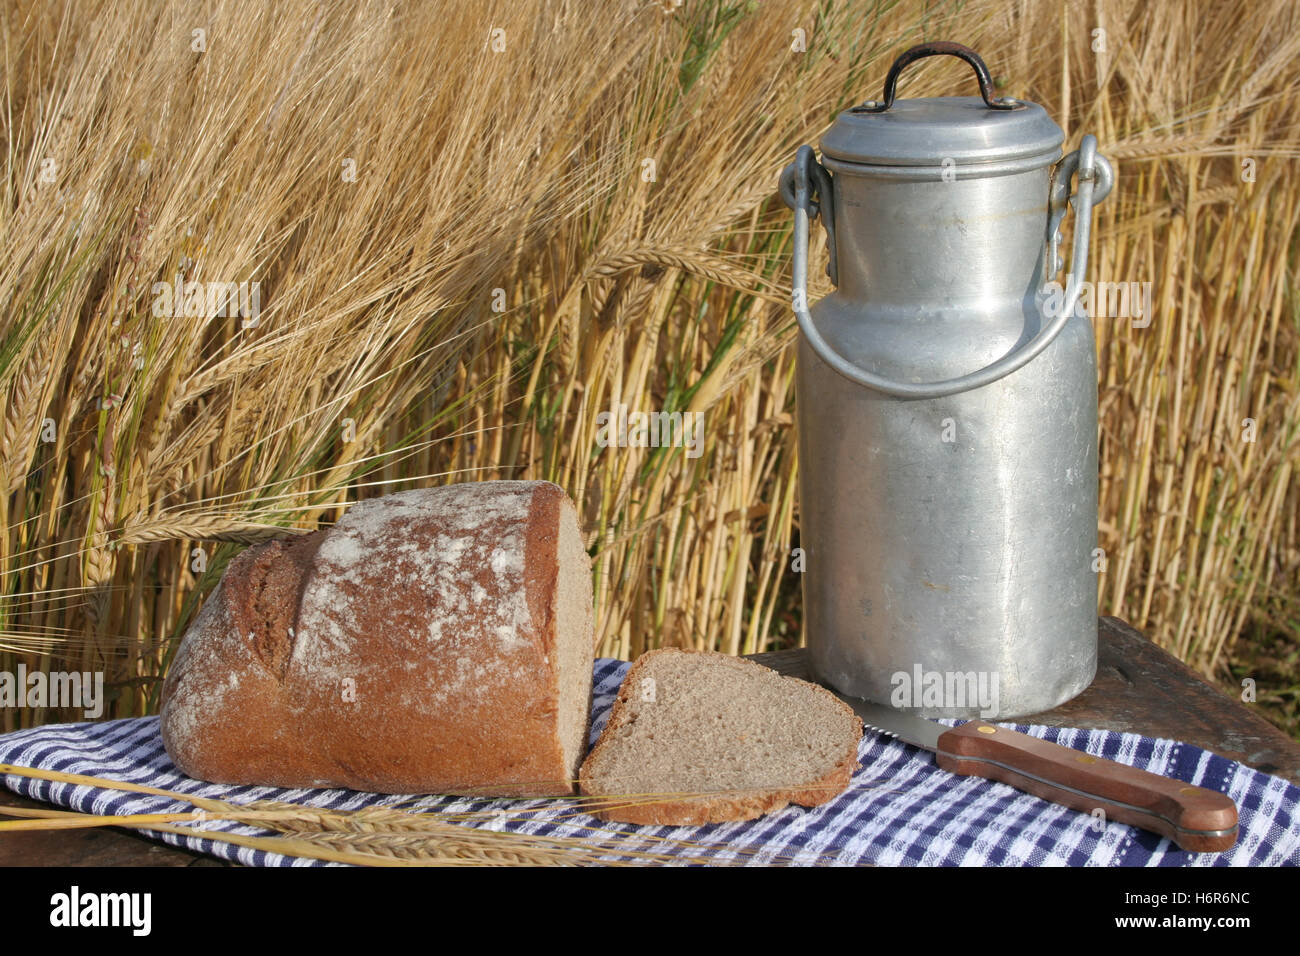 picnic on the sidelines with bread and milk - Stock Image